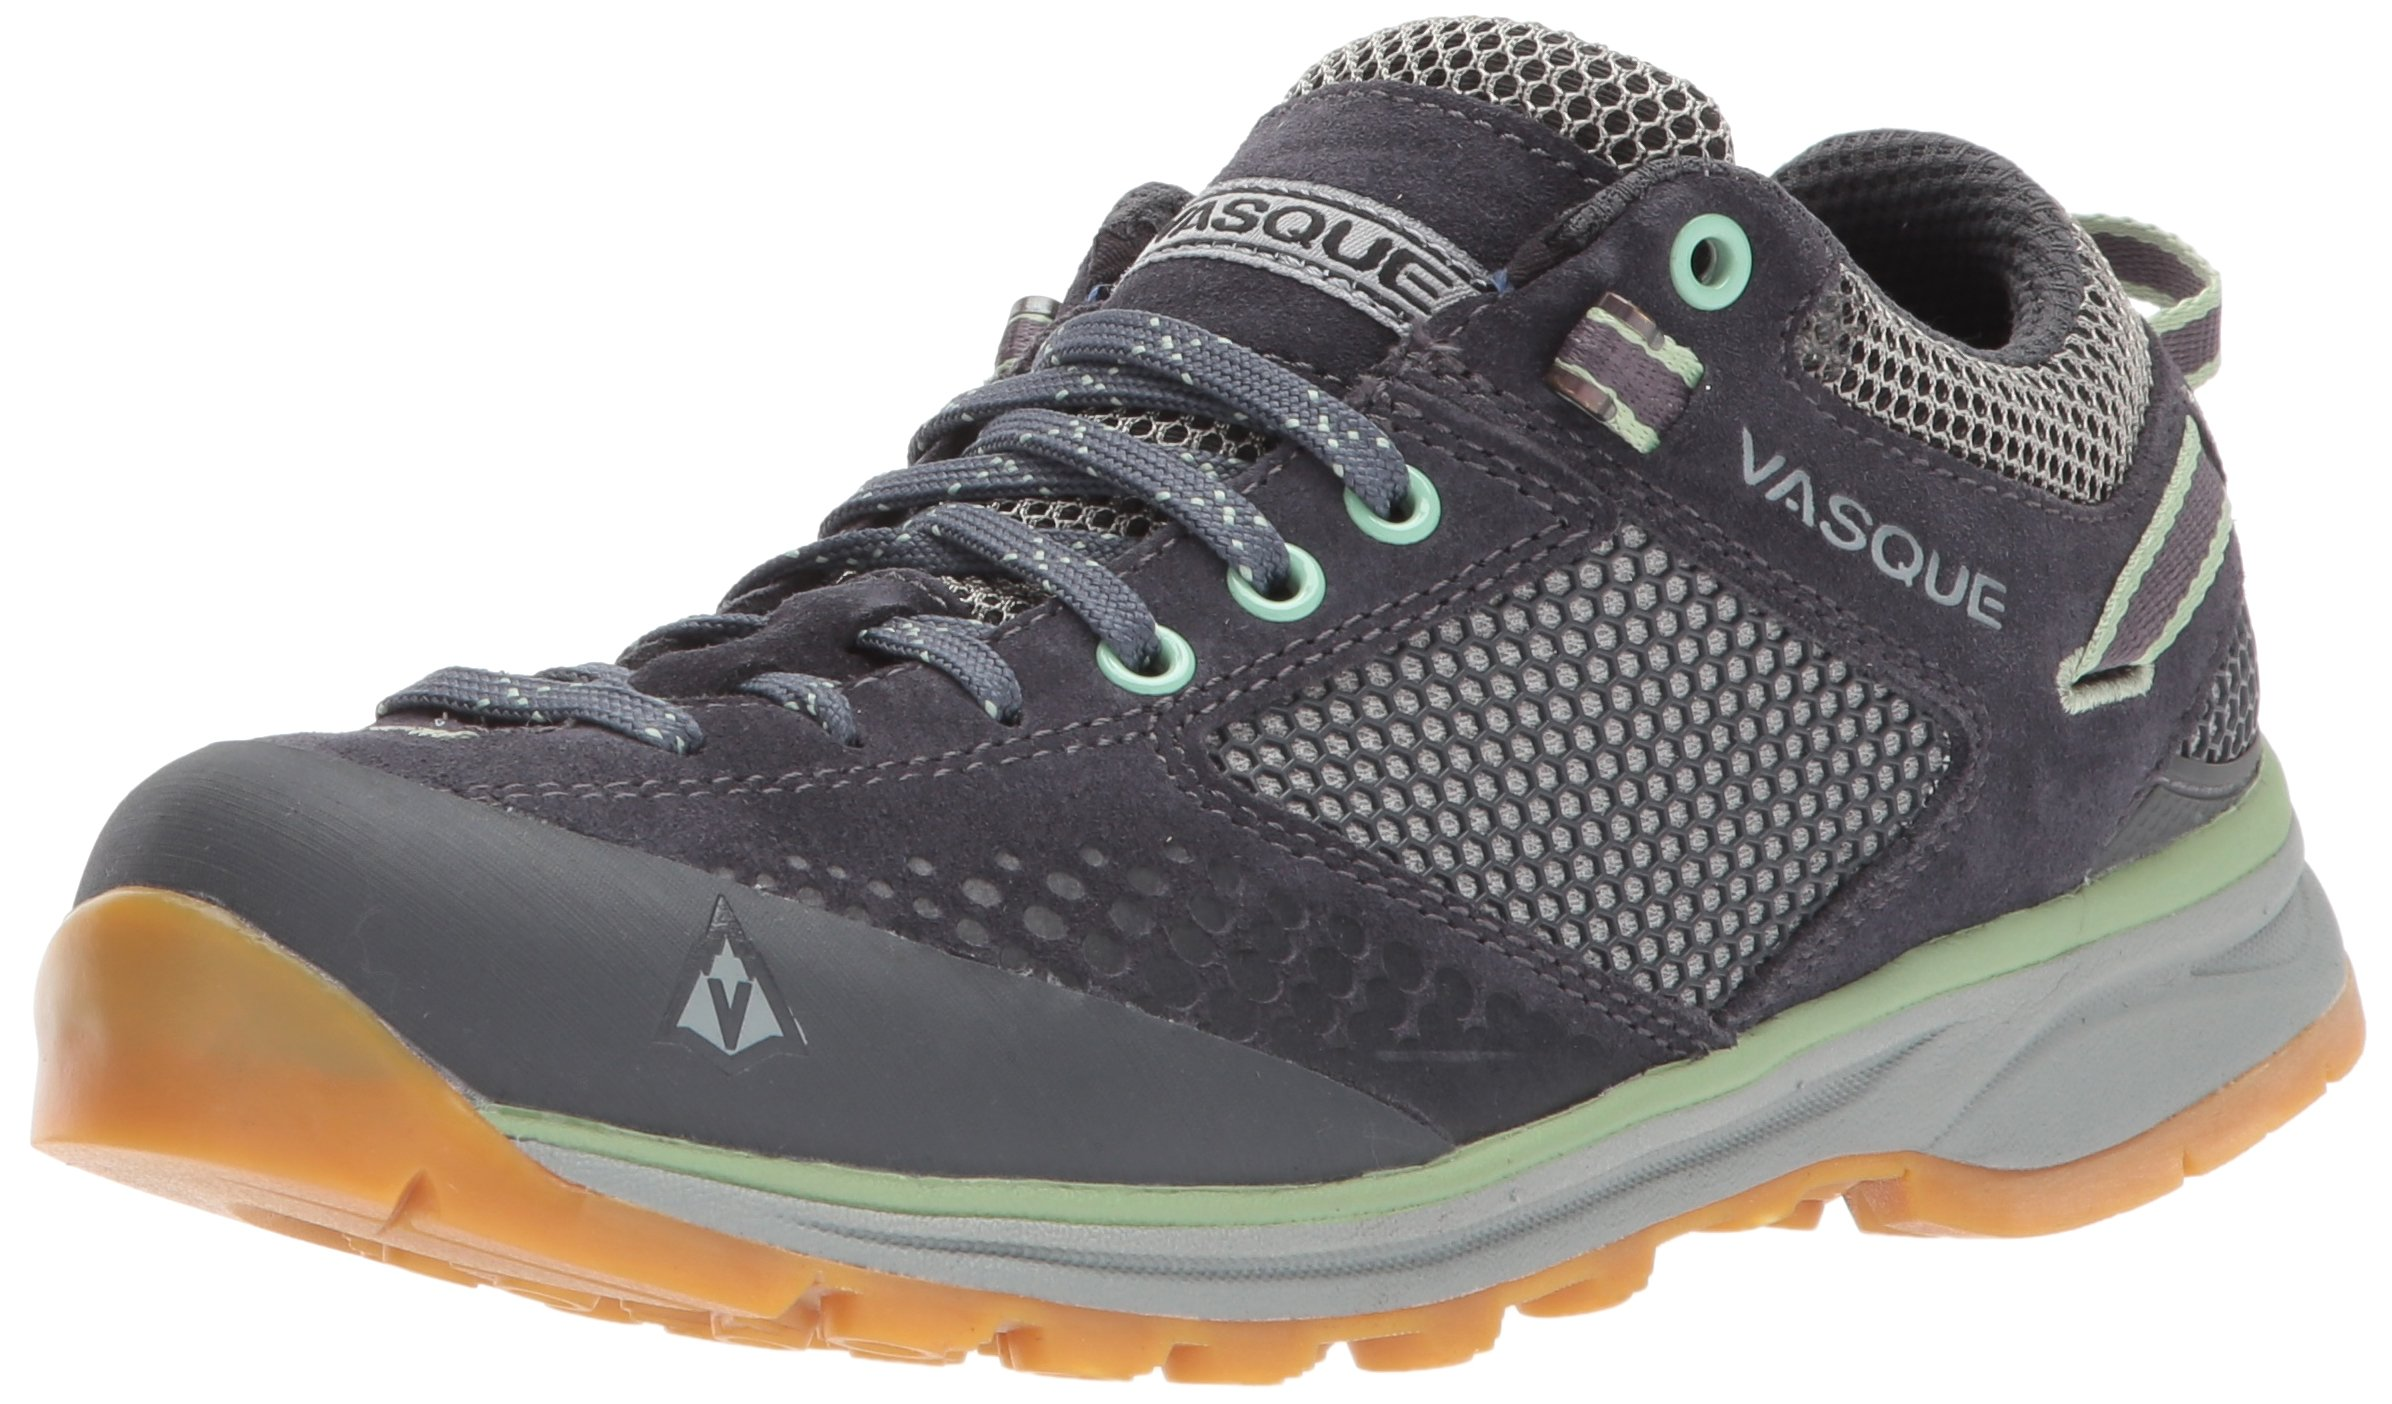 Vasque Womens Grand Traverse Backpacking